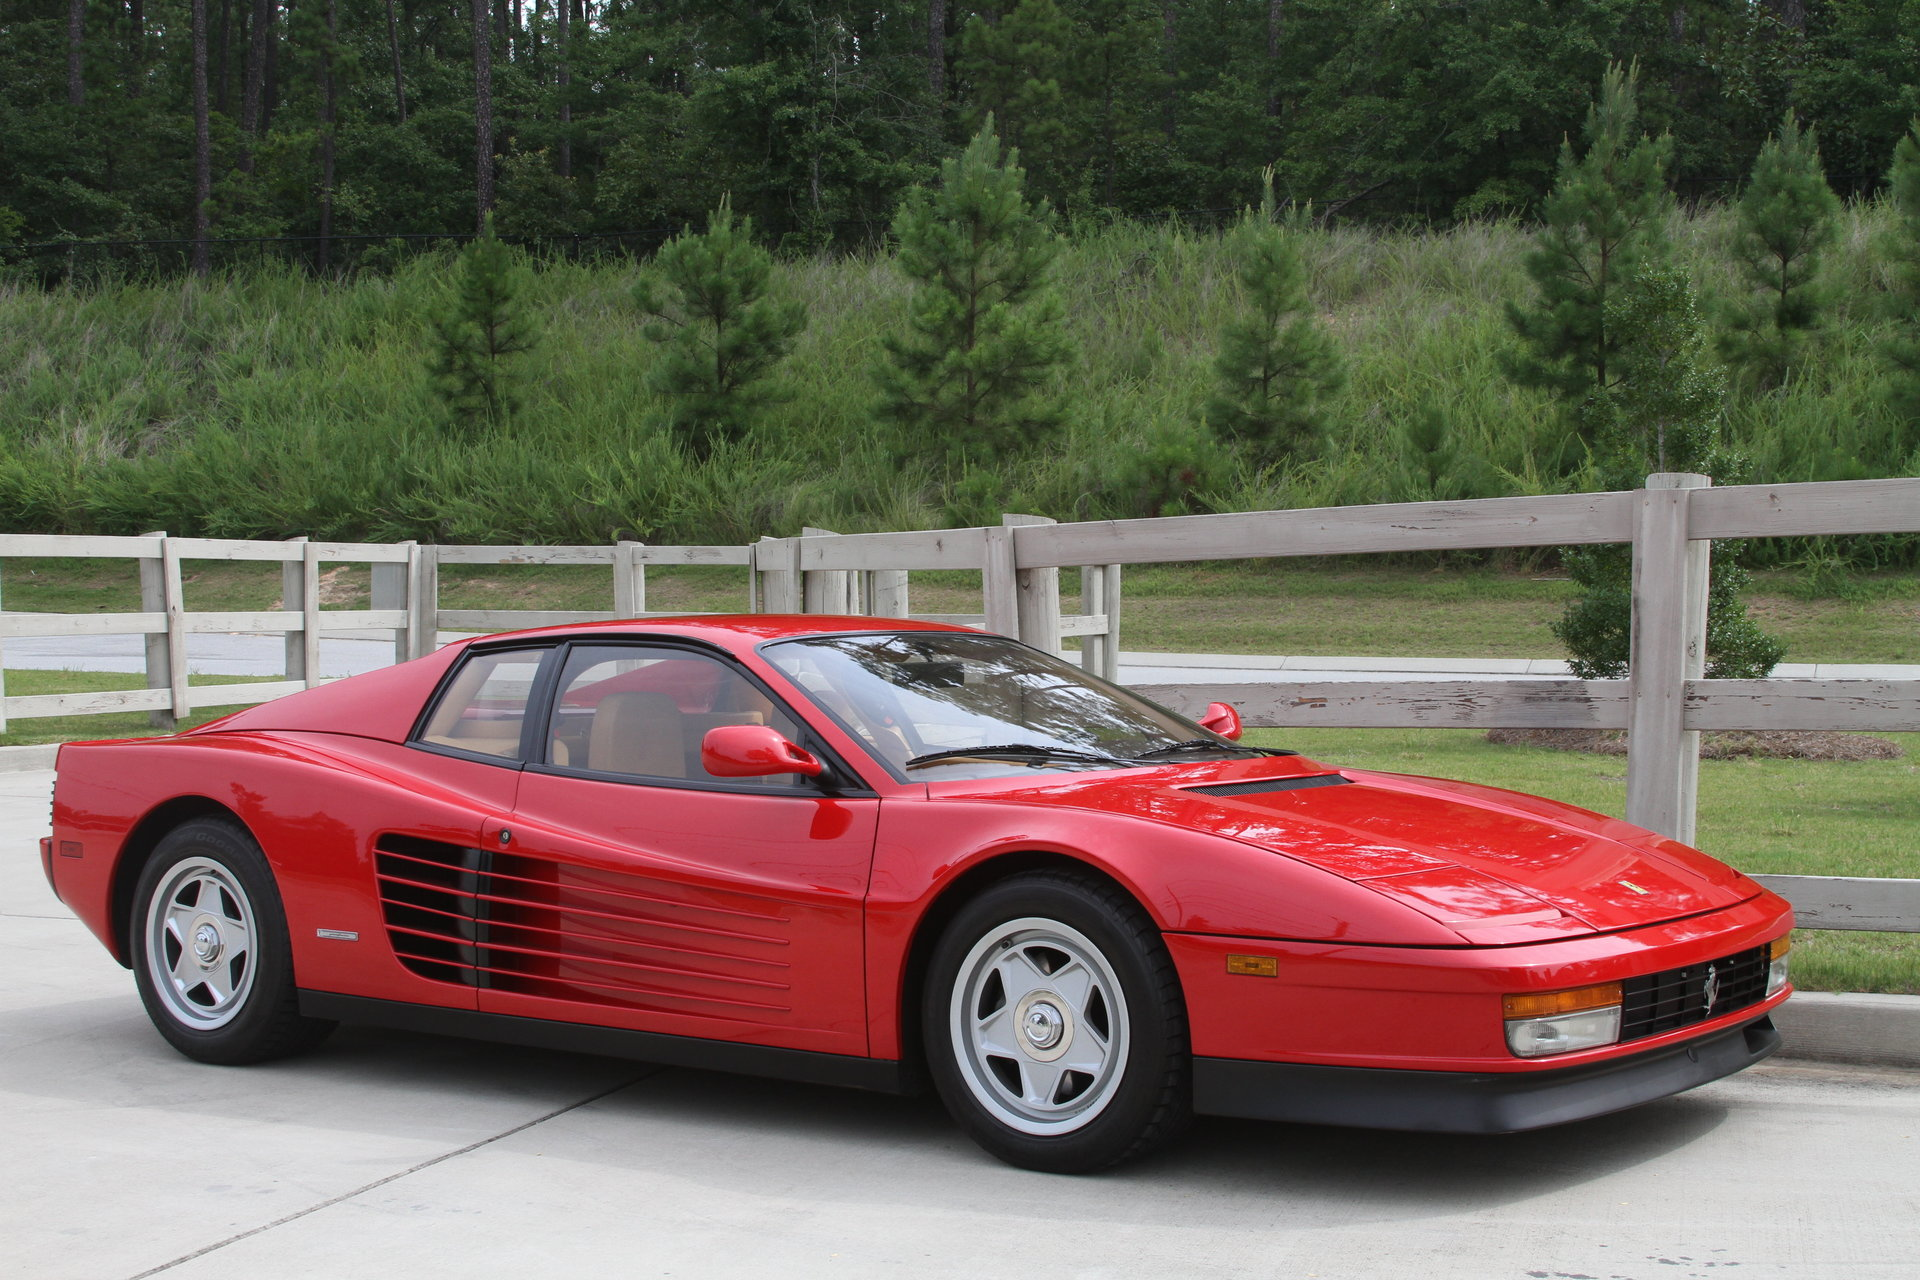 1987 ferrari testarossa for sale 72965 mcg. Black Bedroom Furniture Sets. Home Design Ideas